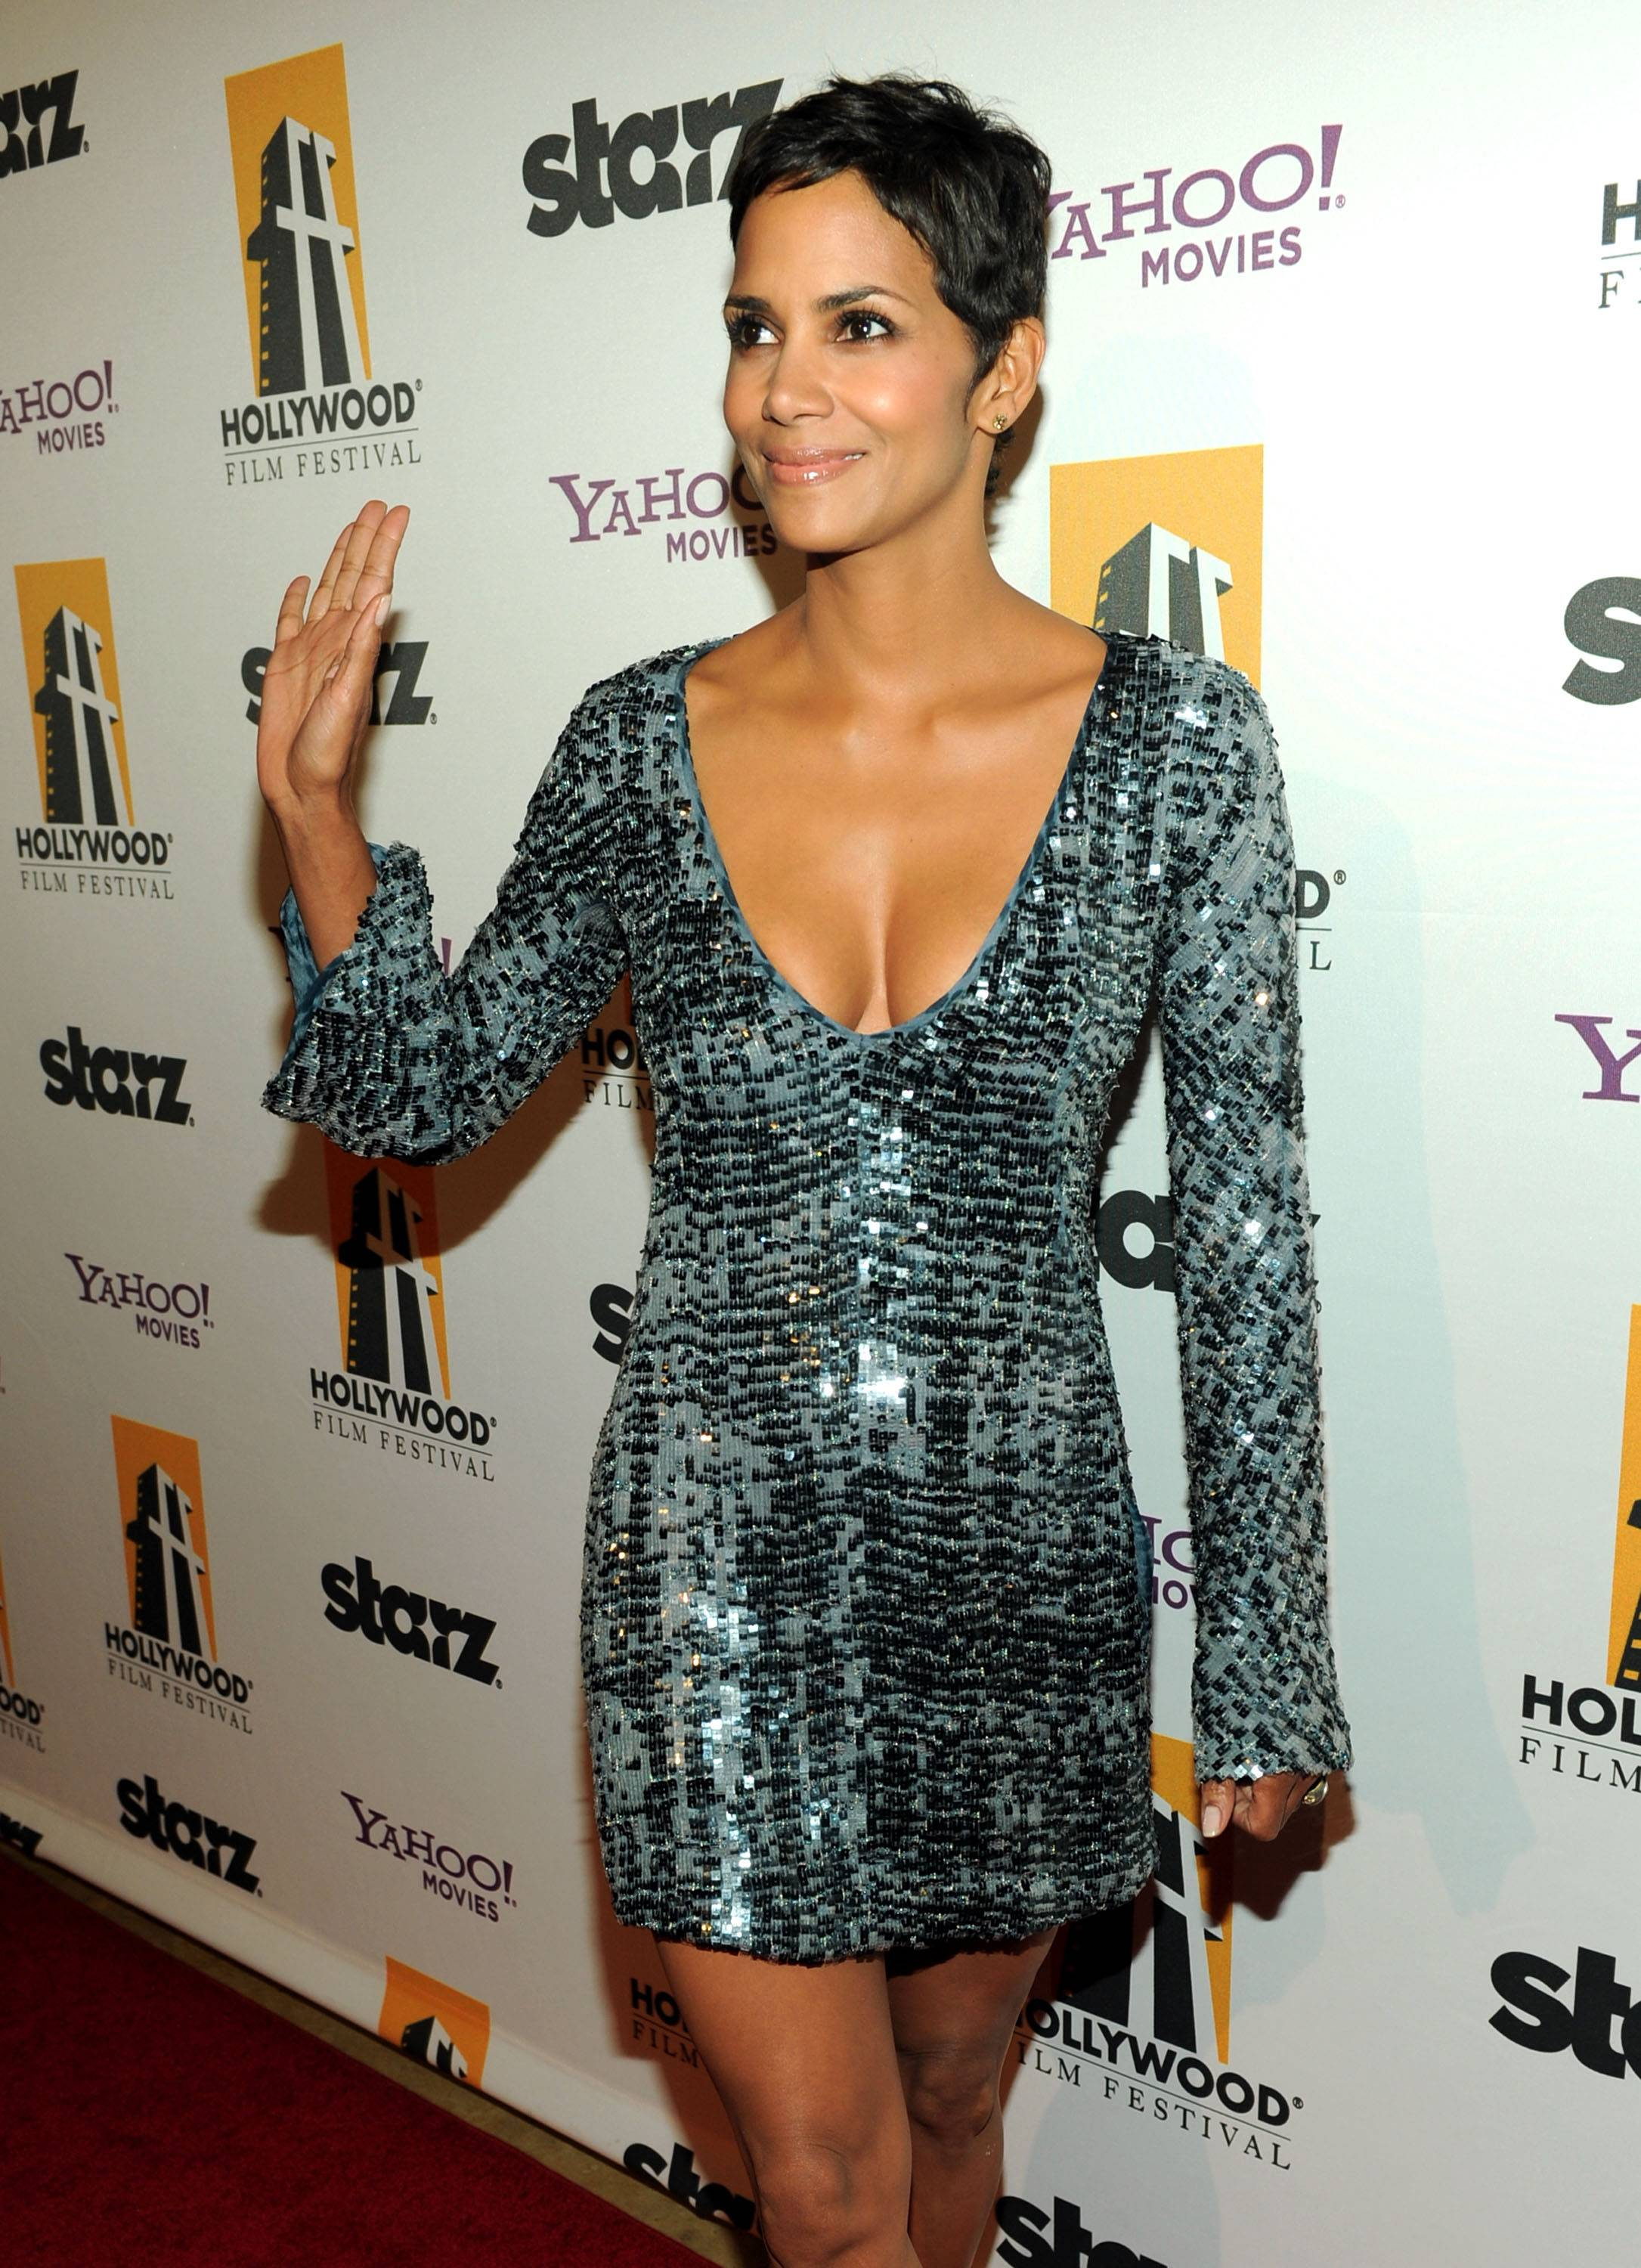 Actress Halle Berry arrives at the 14th annual Hollywood Awards Gala at The Beverly Hilton Hotel on October 25, 2010 in Beverly Hills, California.